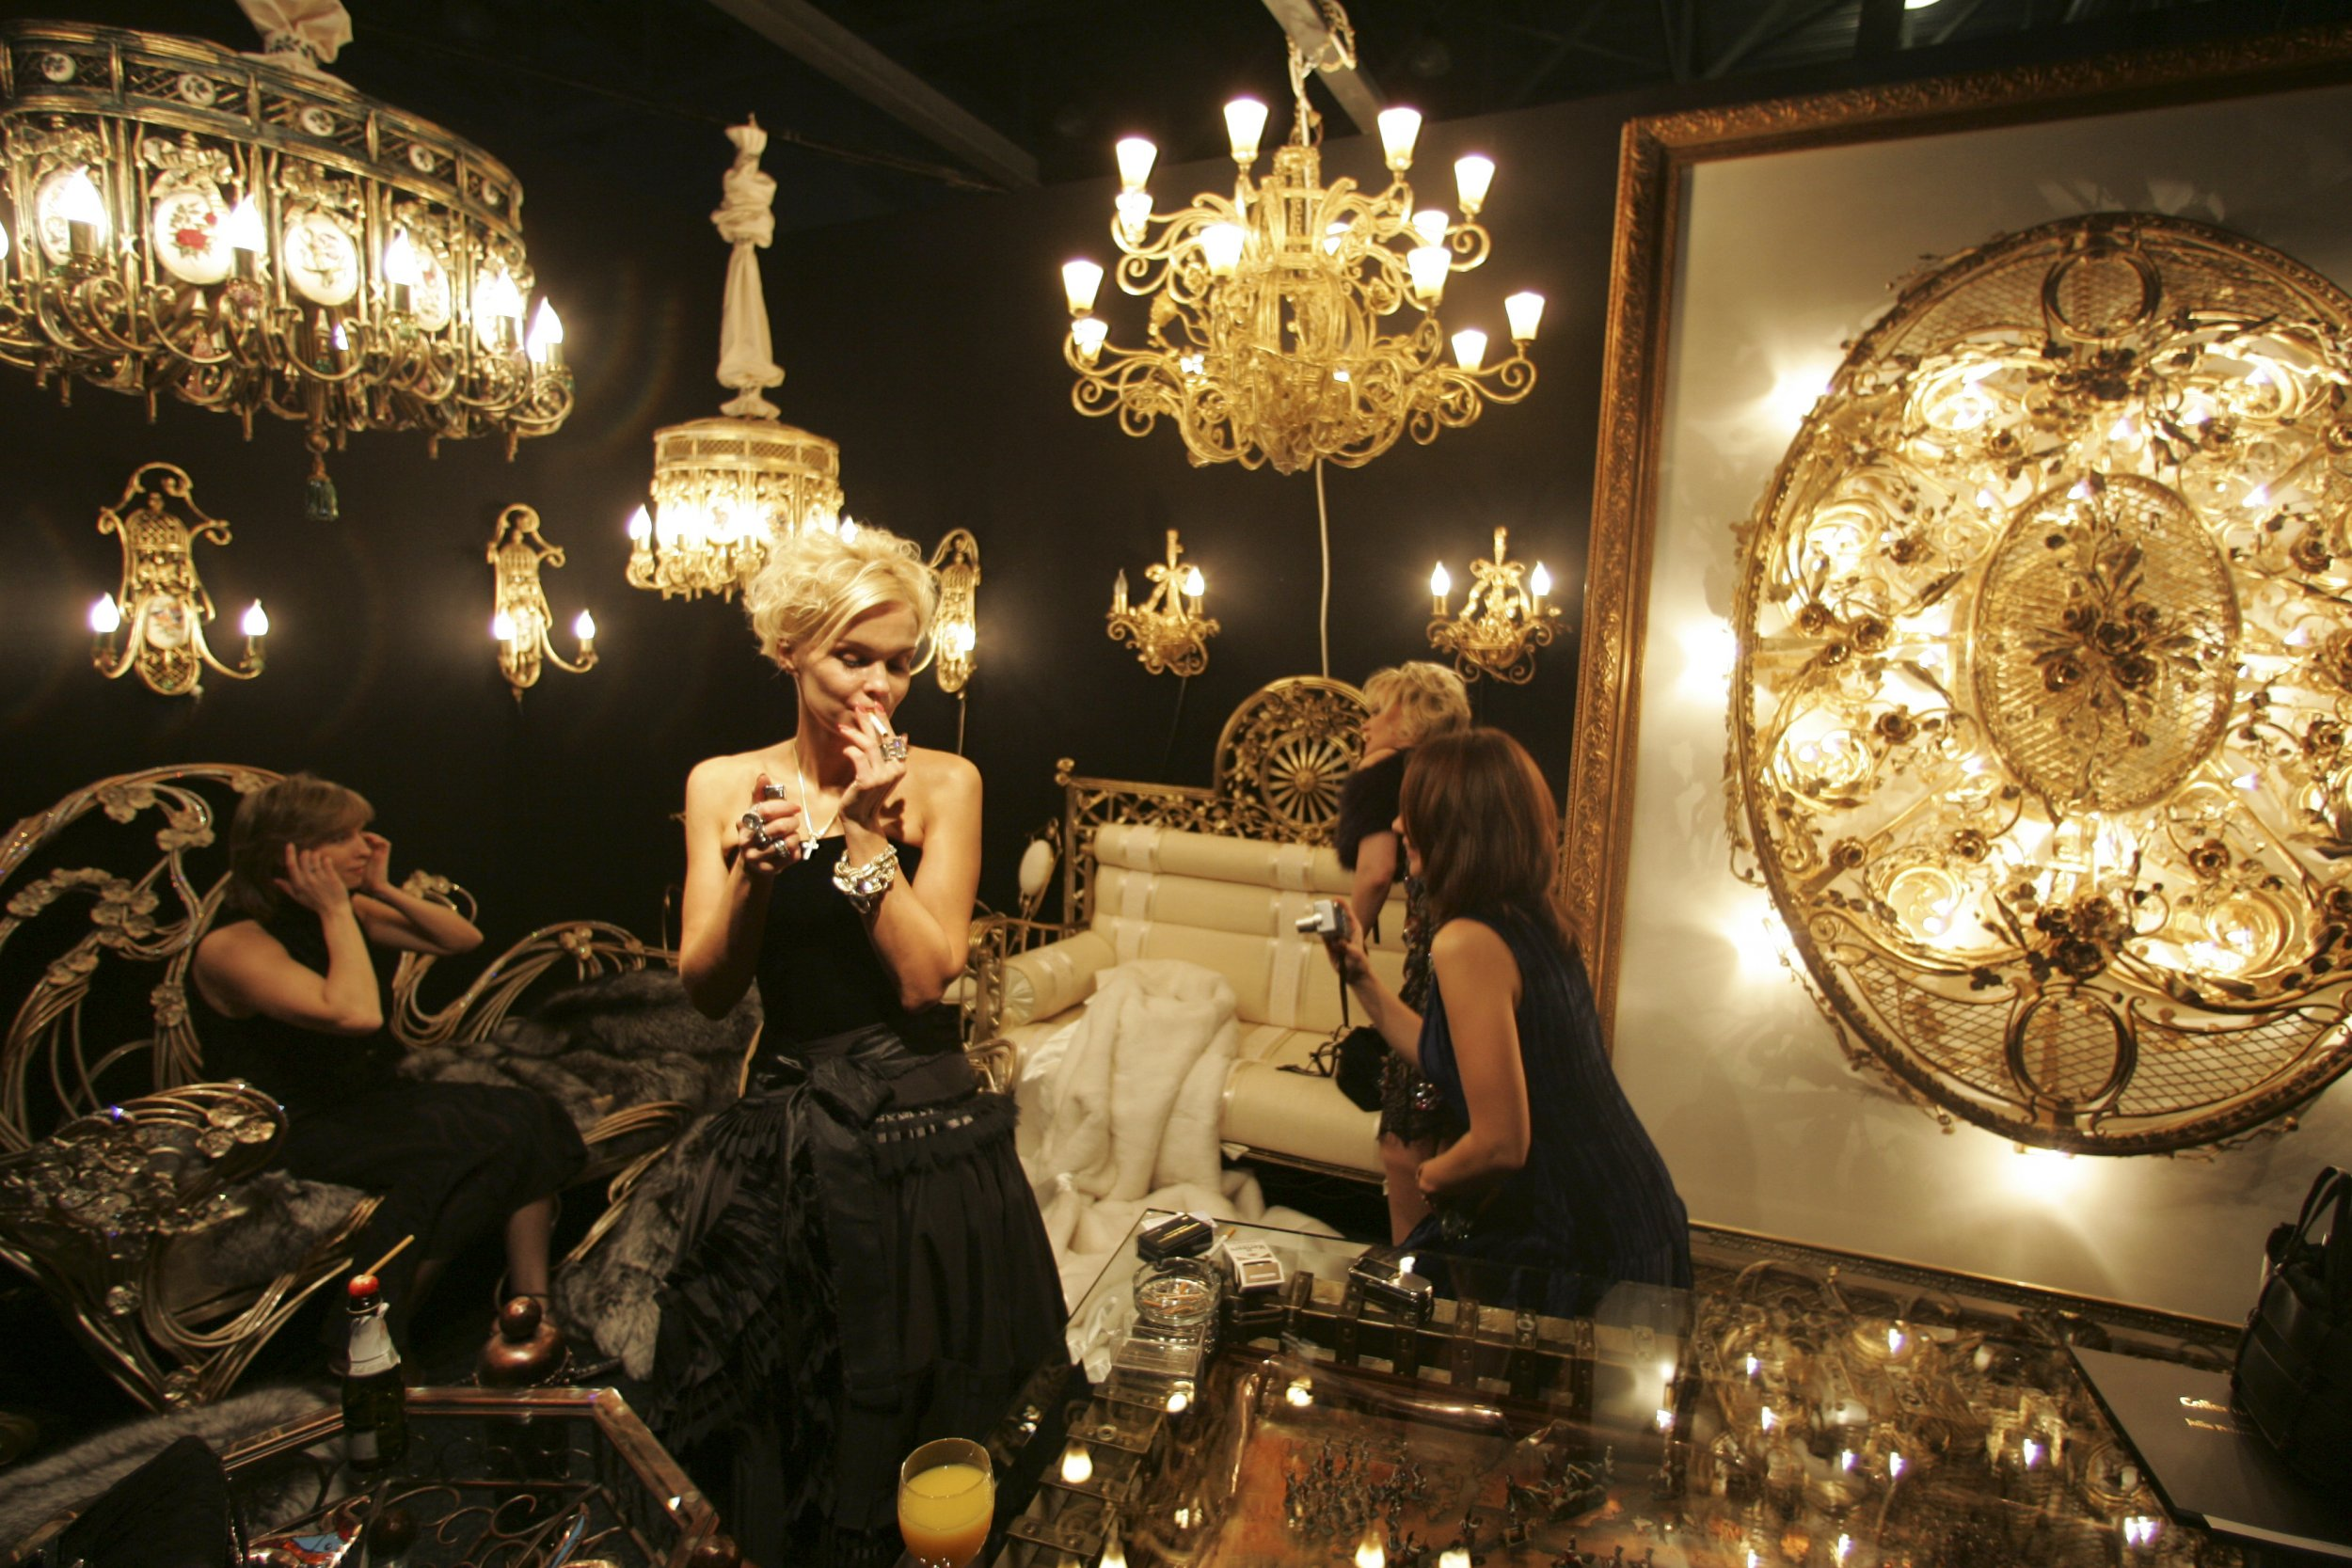 Woman walks surrounded by golden luxury items